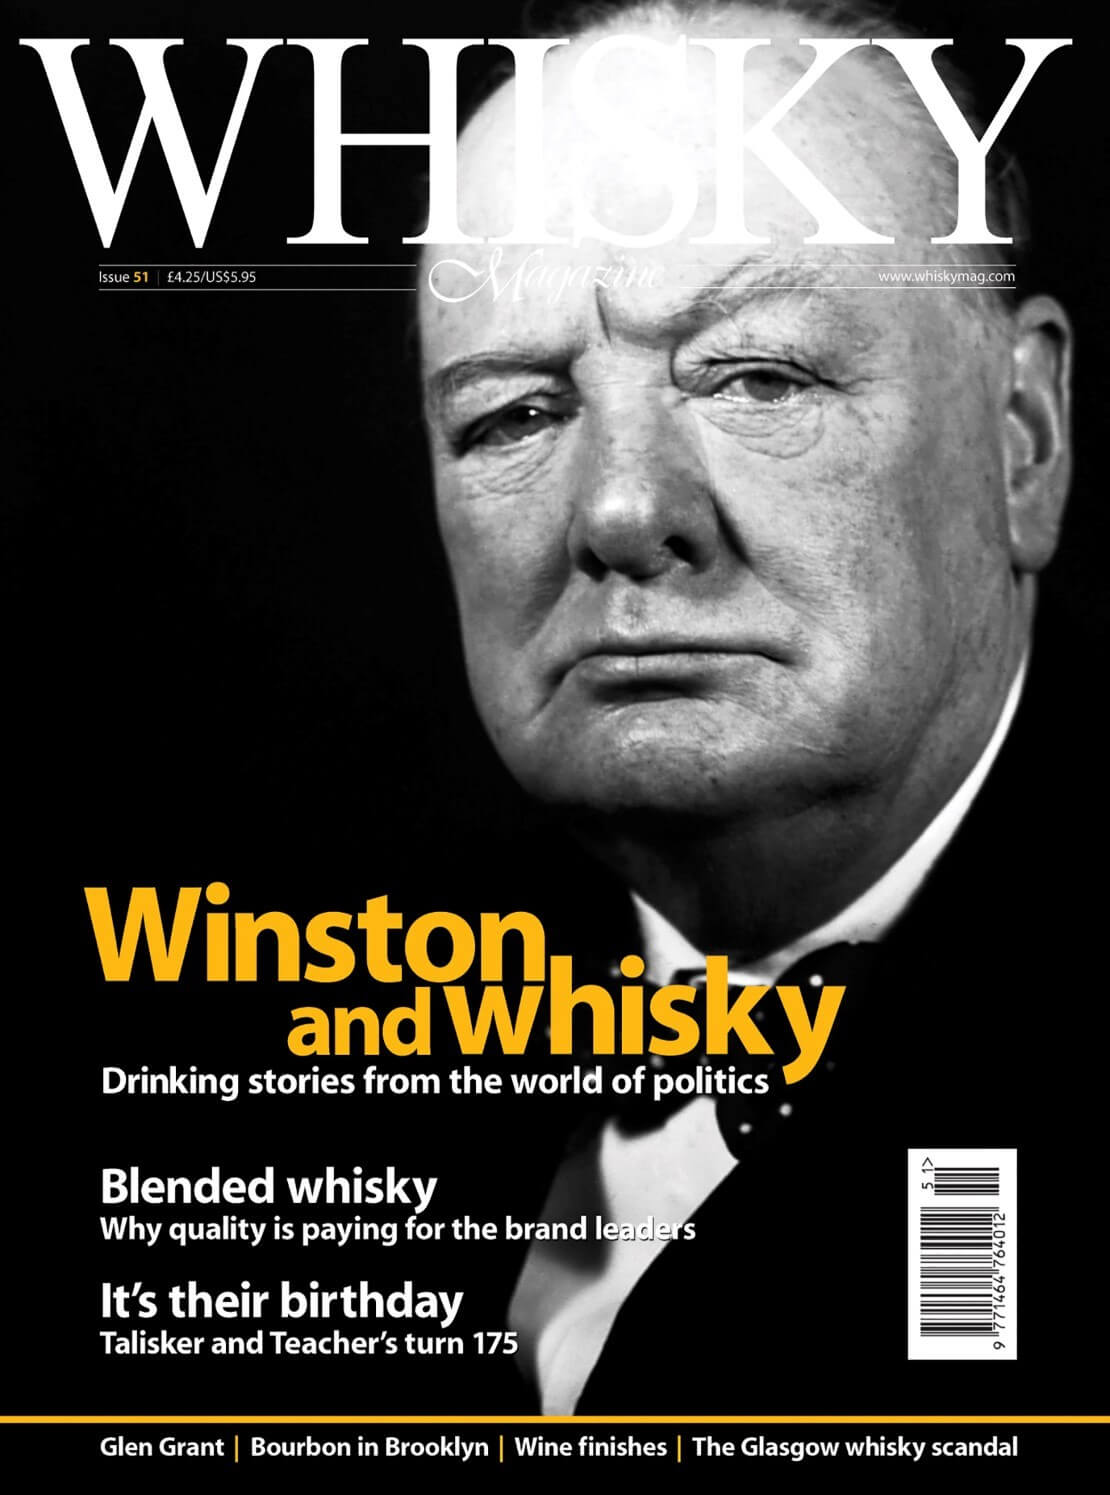 Winston and whisky Blended whisky Talisker Teacher's turn 175 Glen Grant Bourbon in Brooklyn The...